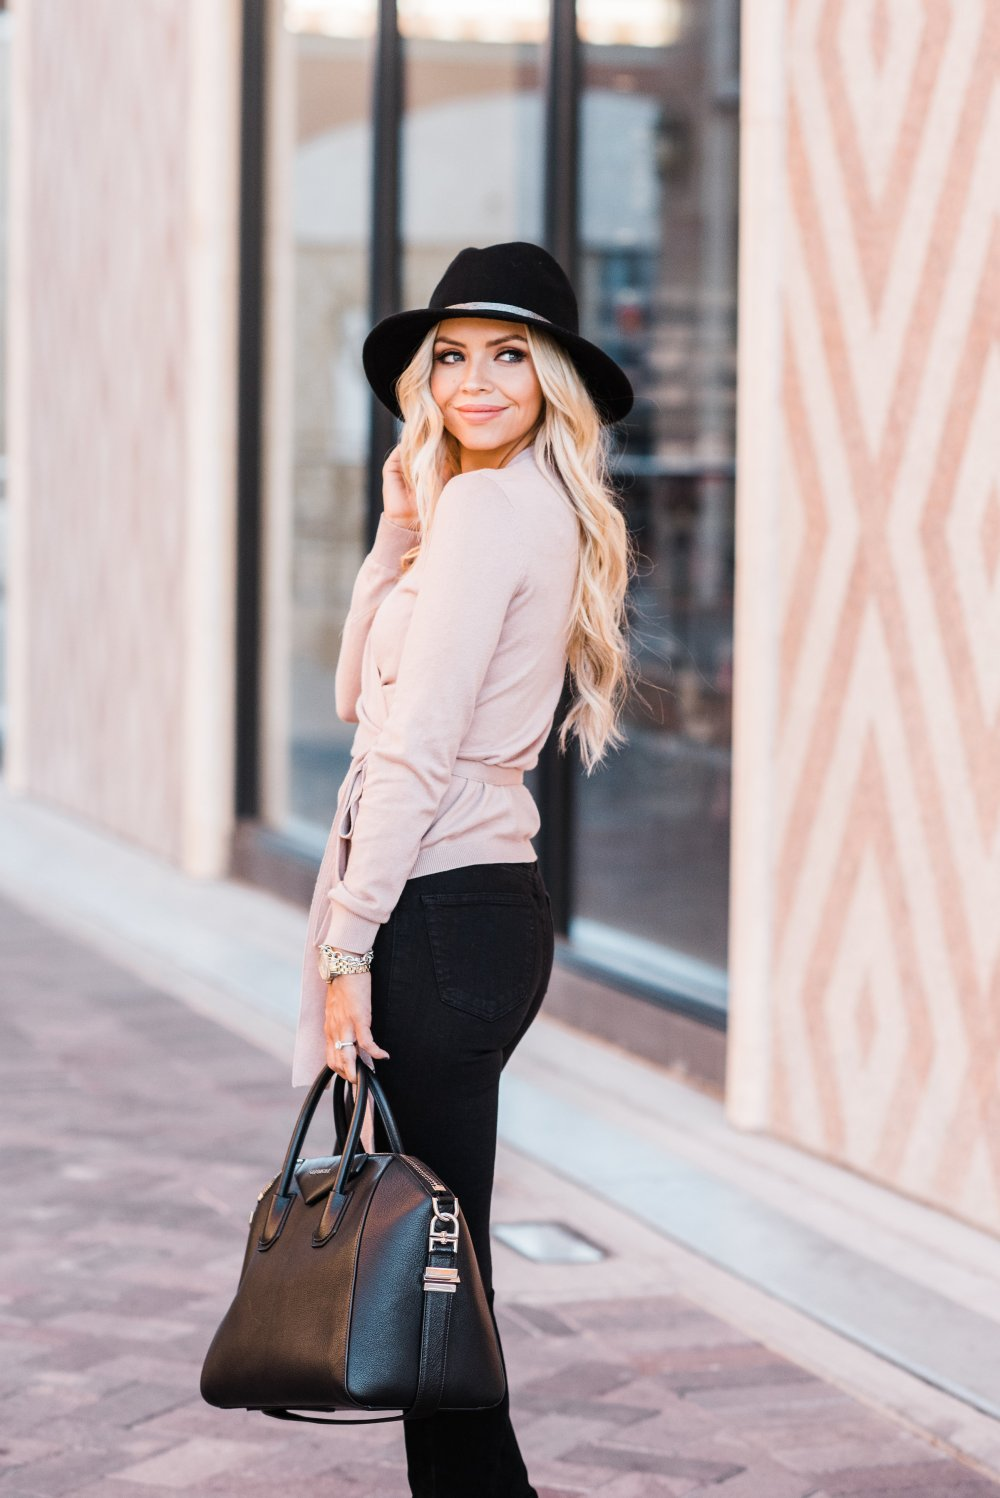 This pink wrap sweater is to die for! It is perfect for spanning multiple seasons and it is SO soft! This pink color and the bow details make it very feminine! The black wool floppy hat is the perfect accessory!